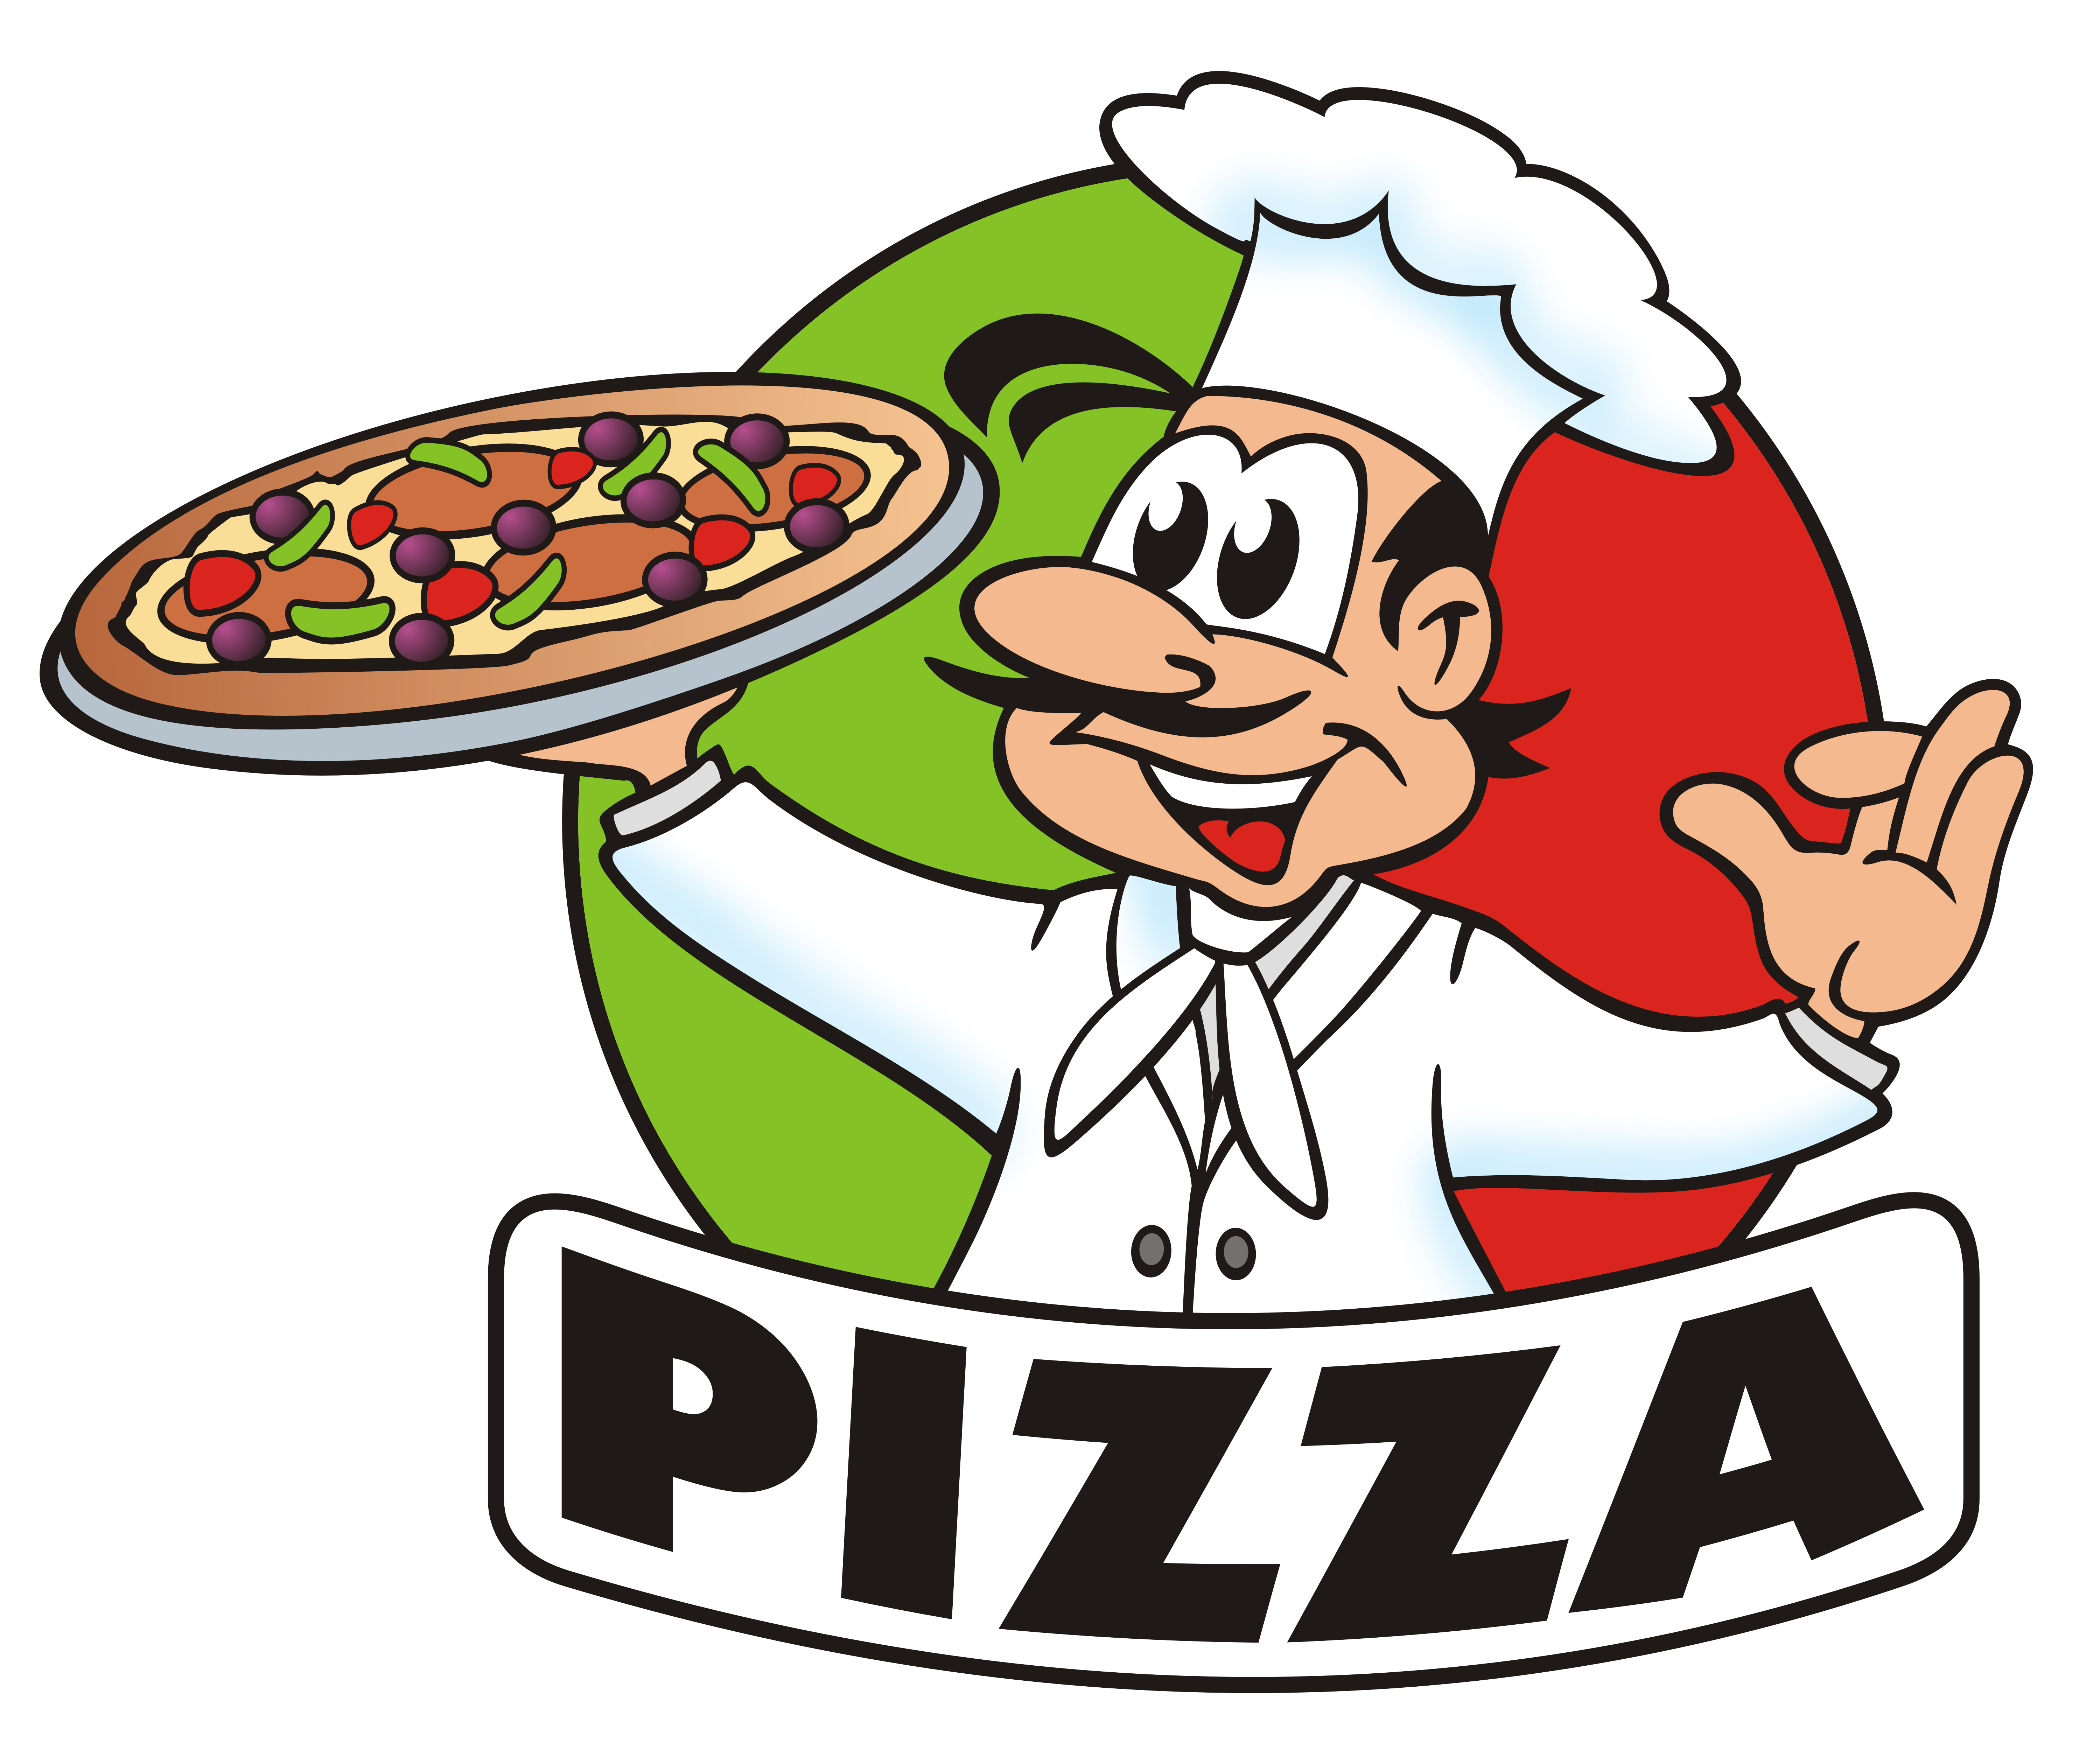 Pizza Images Cartoon - Cliparts.co